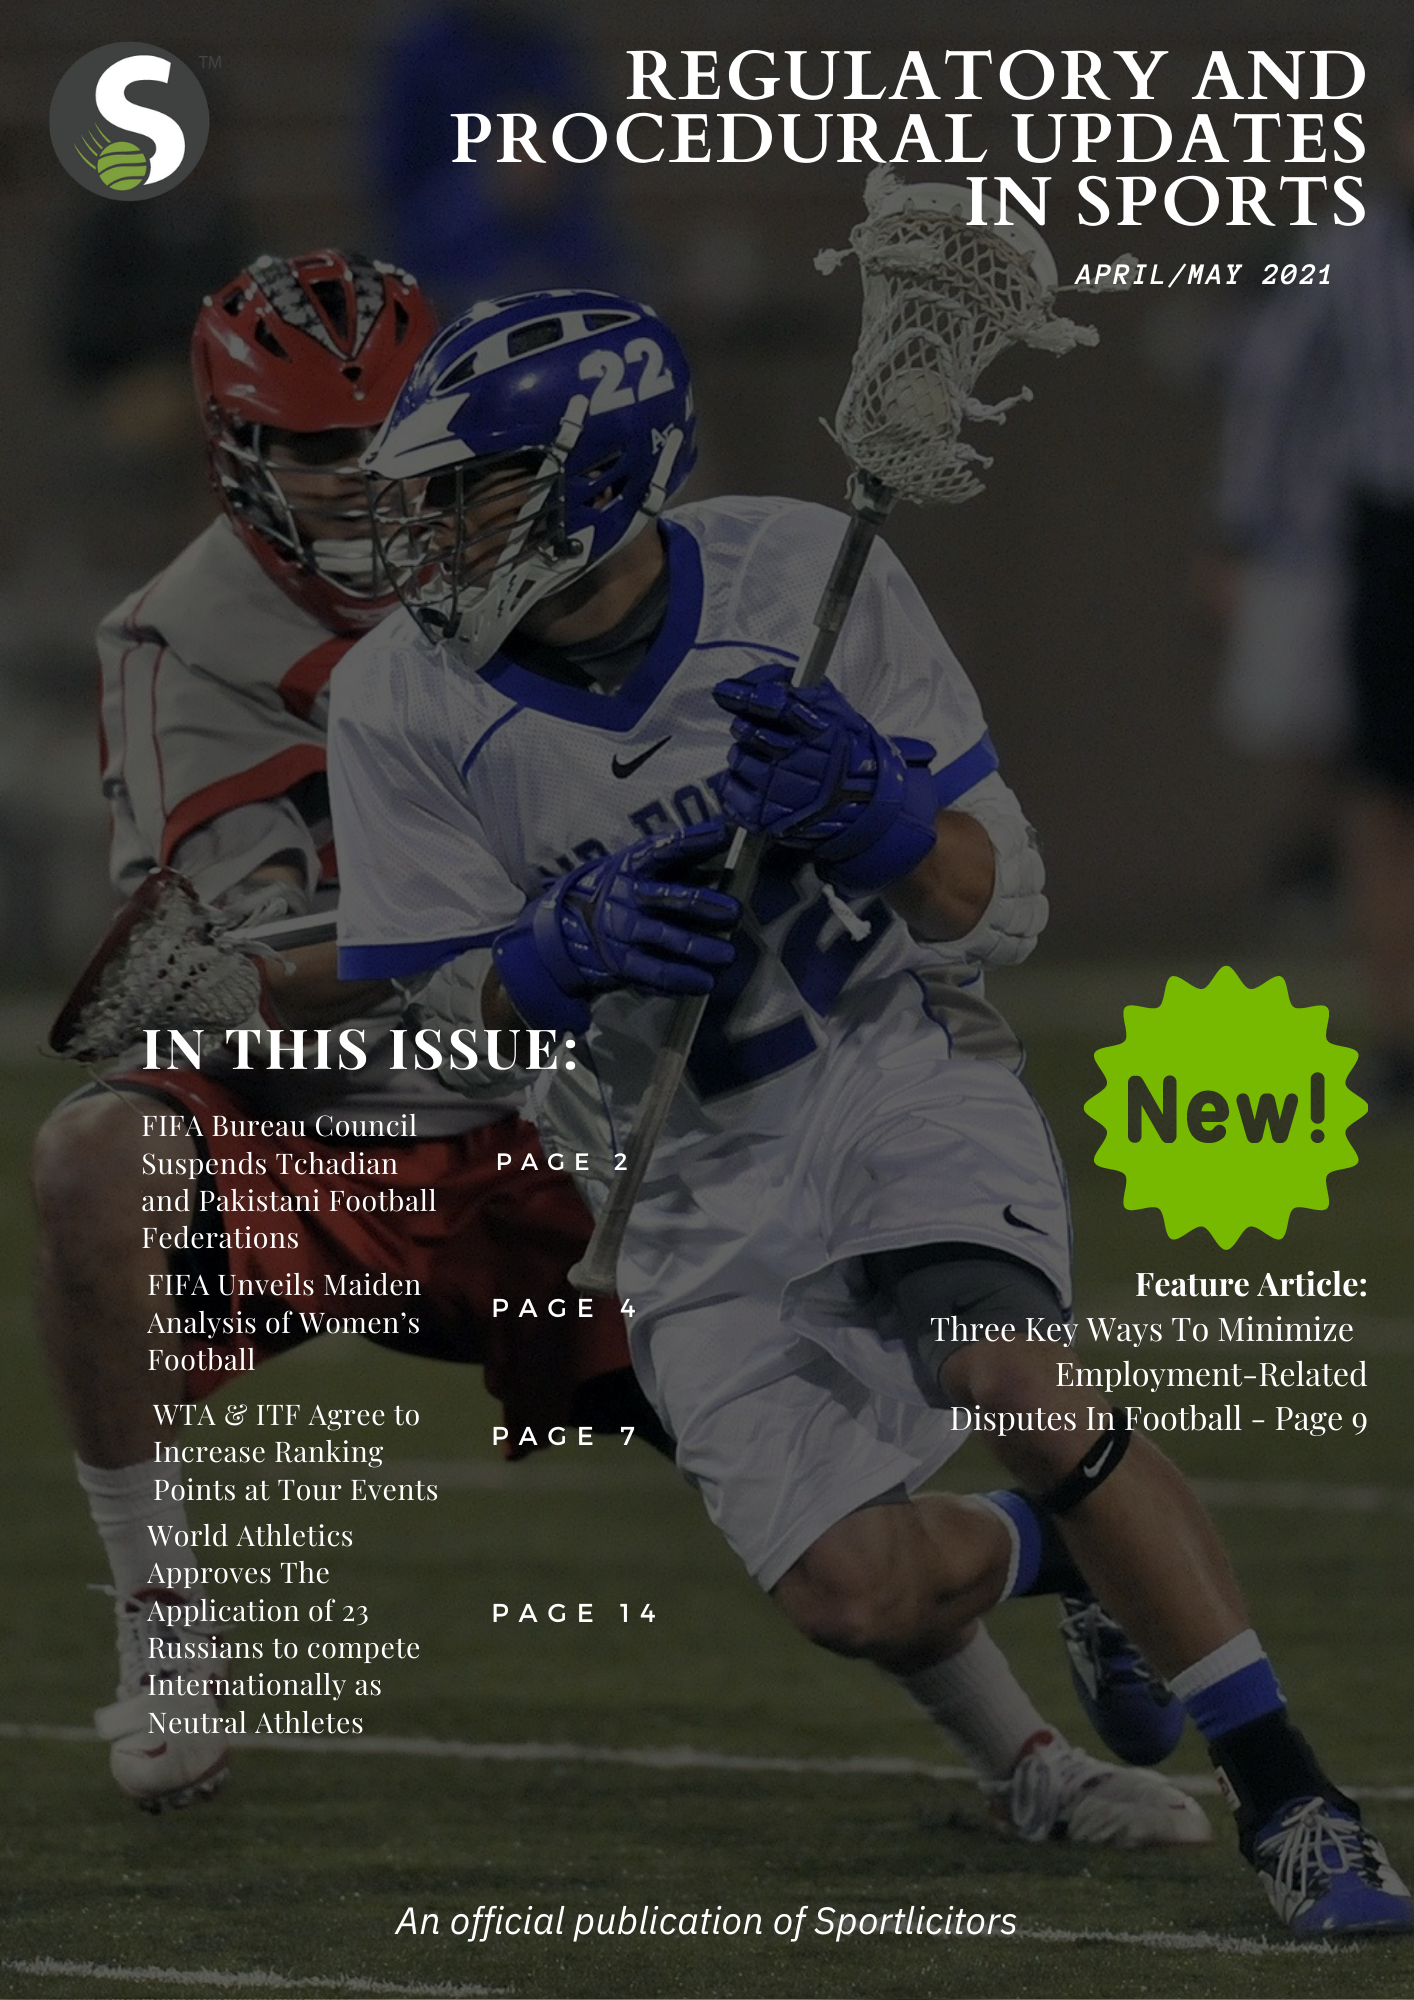 Regulatory And Procedural Updates In Sports- April/May 2021